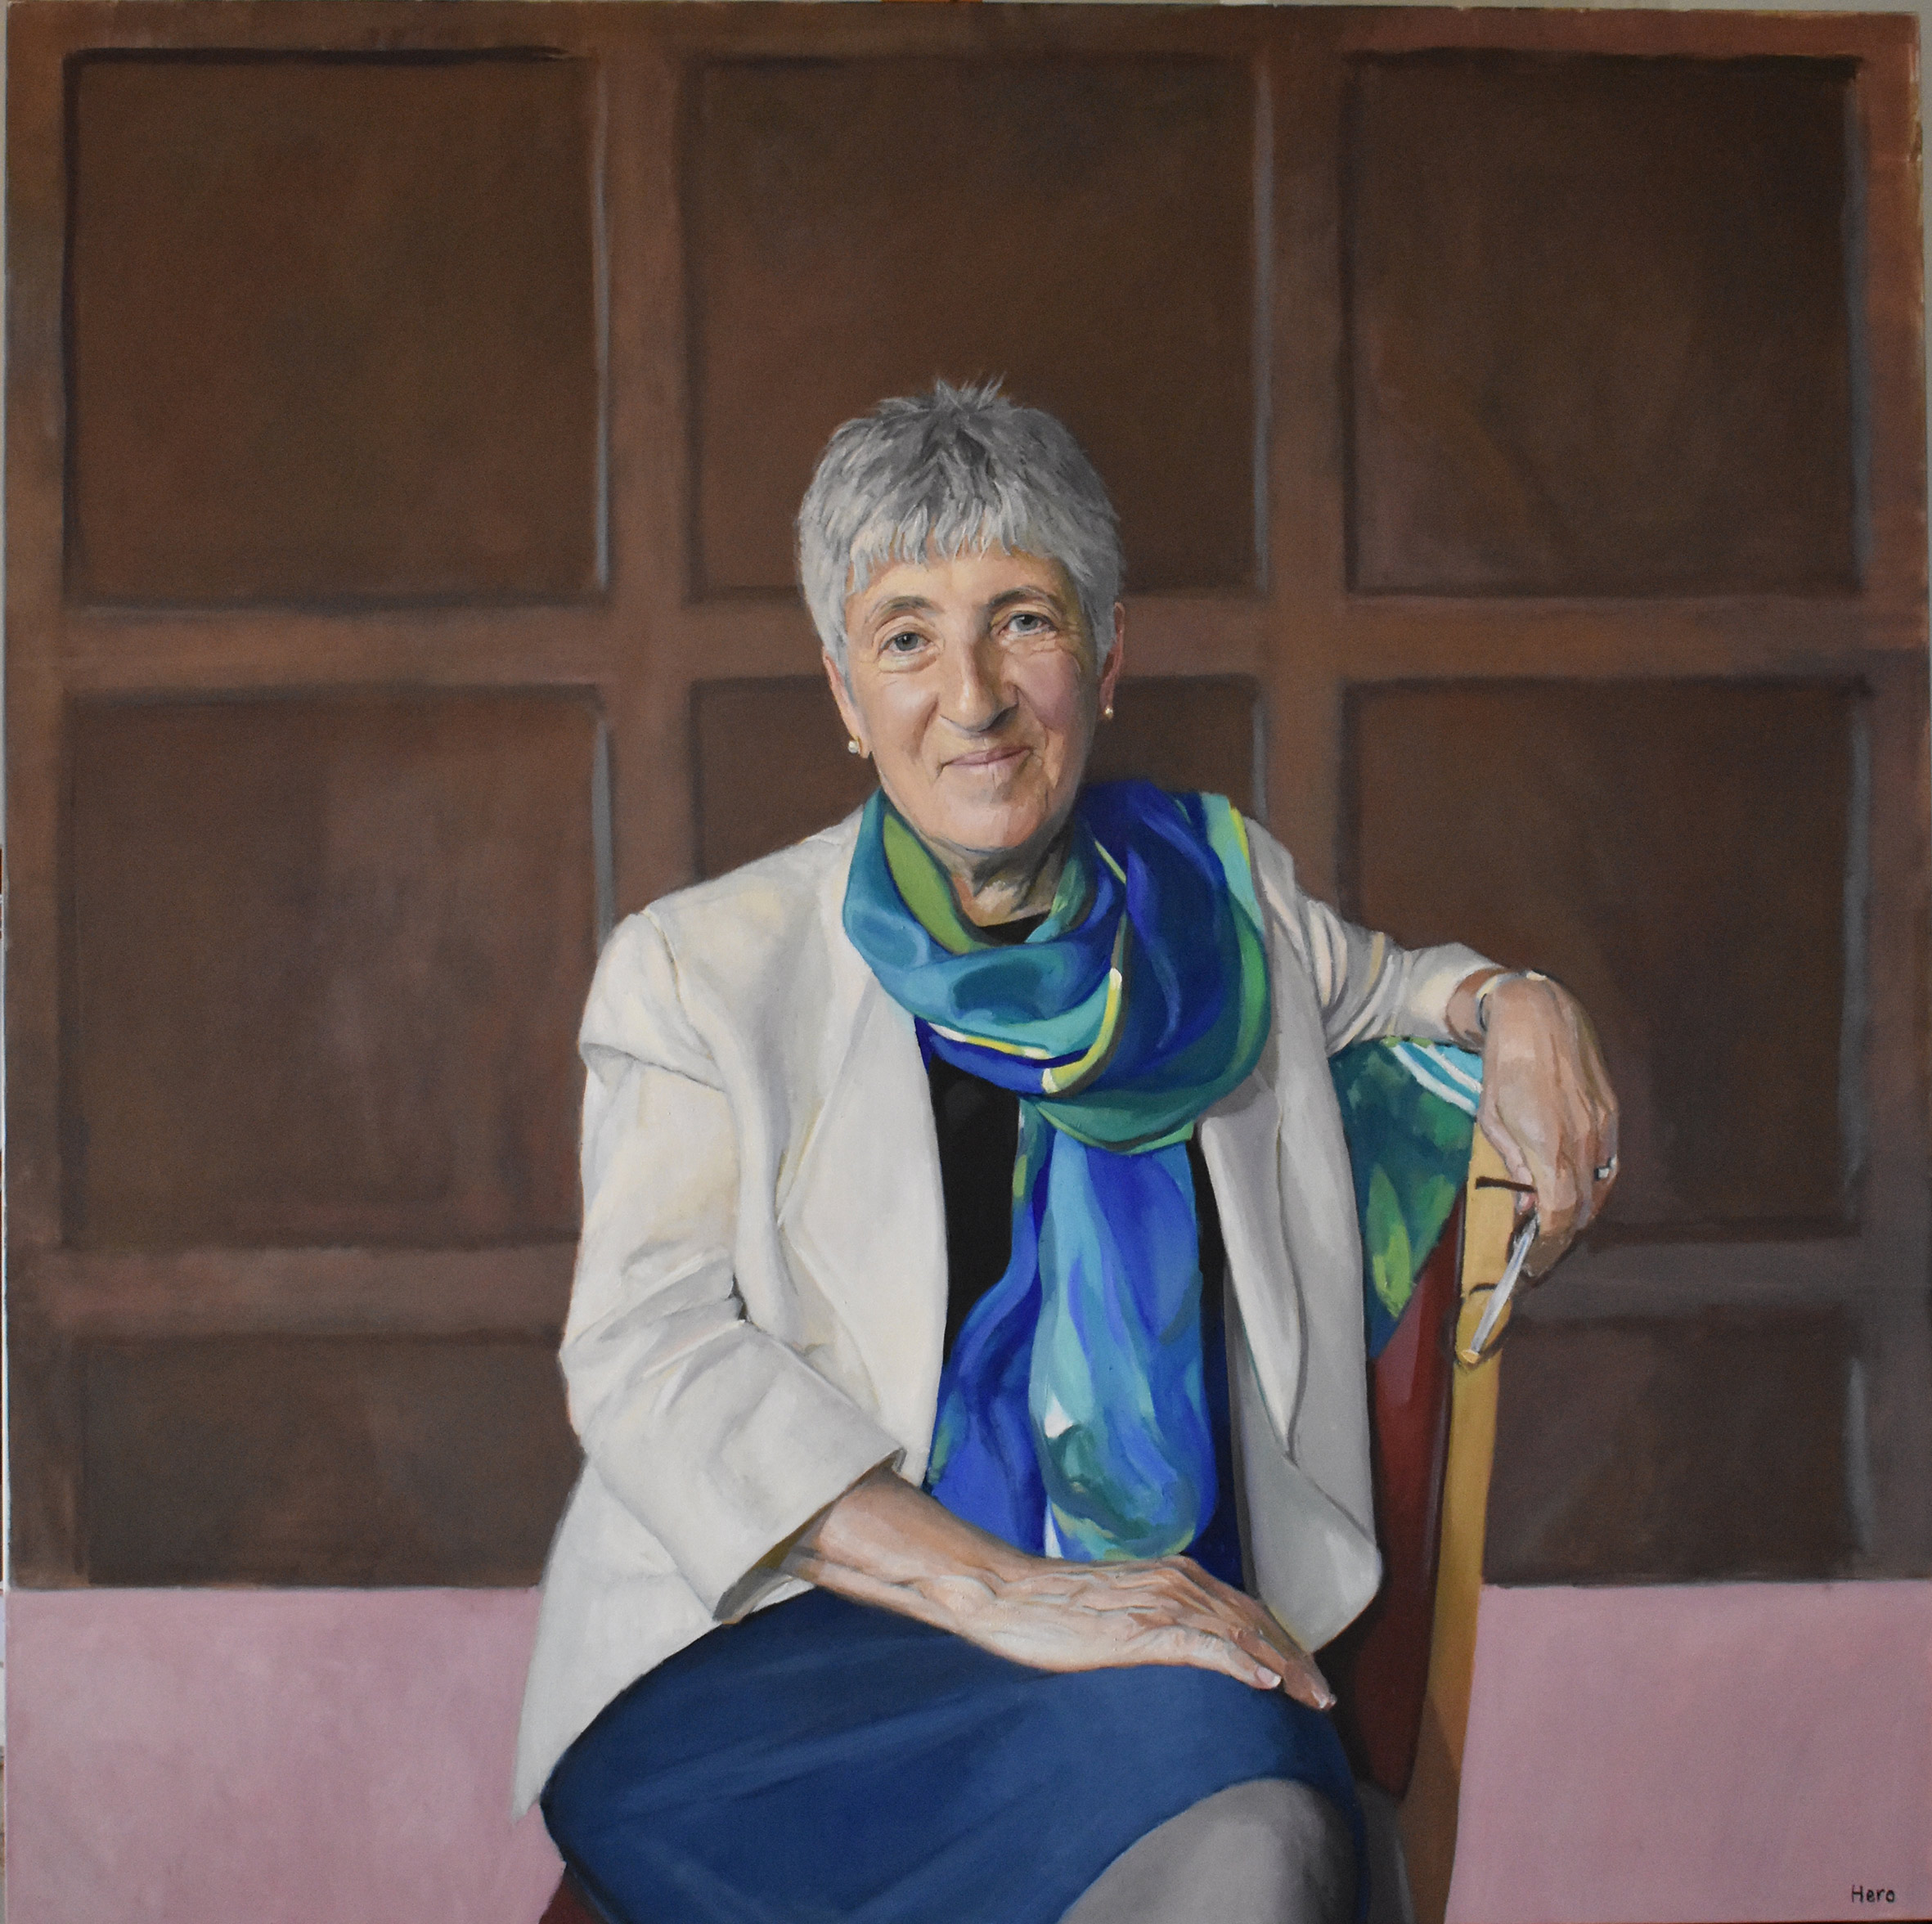 Lynne Brindley painted by Hero Johnson for Pembroke College, Oxford